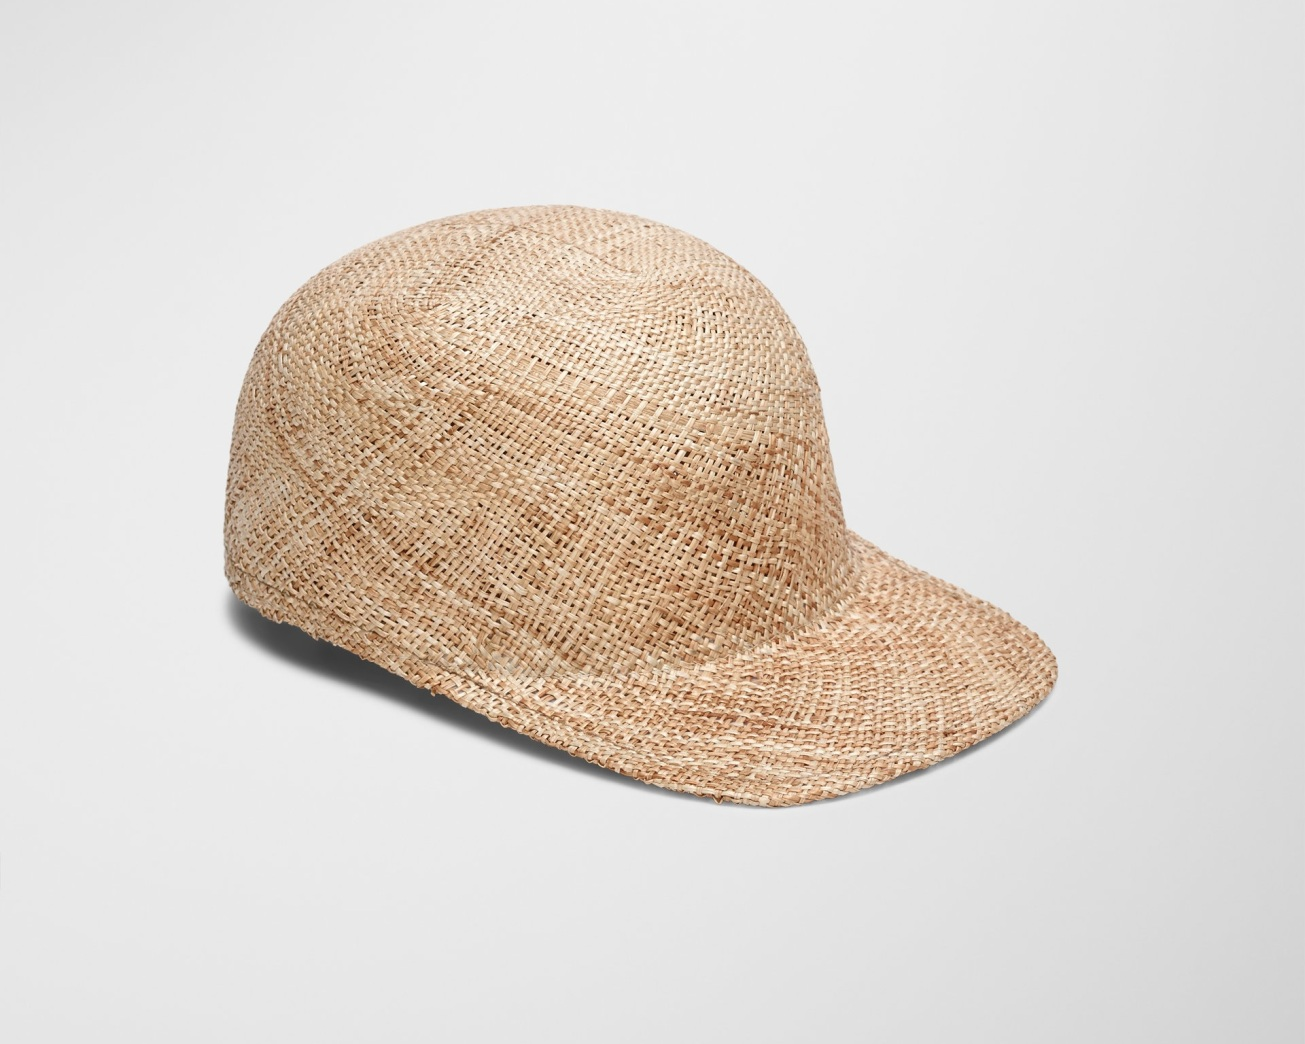 Wilfred arabesque hat, Aritzia $28